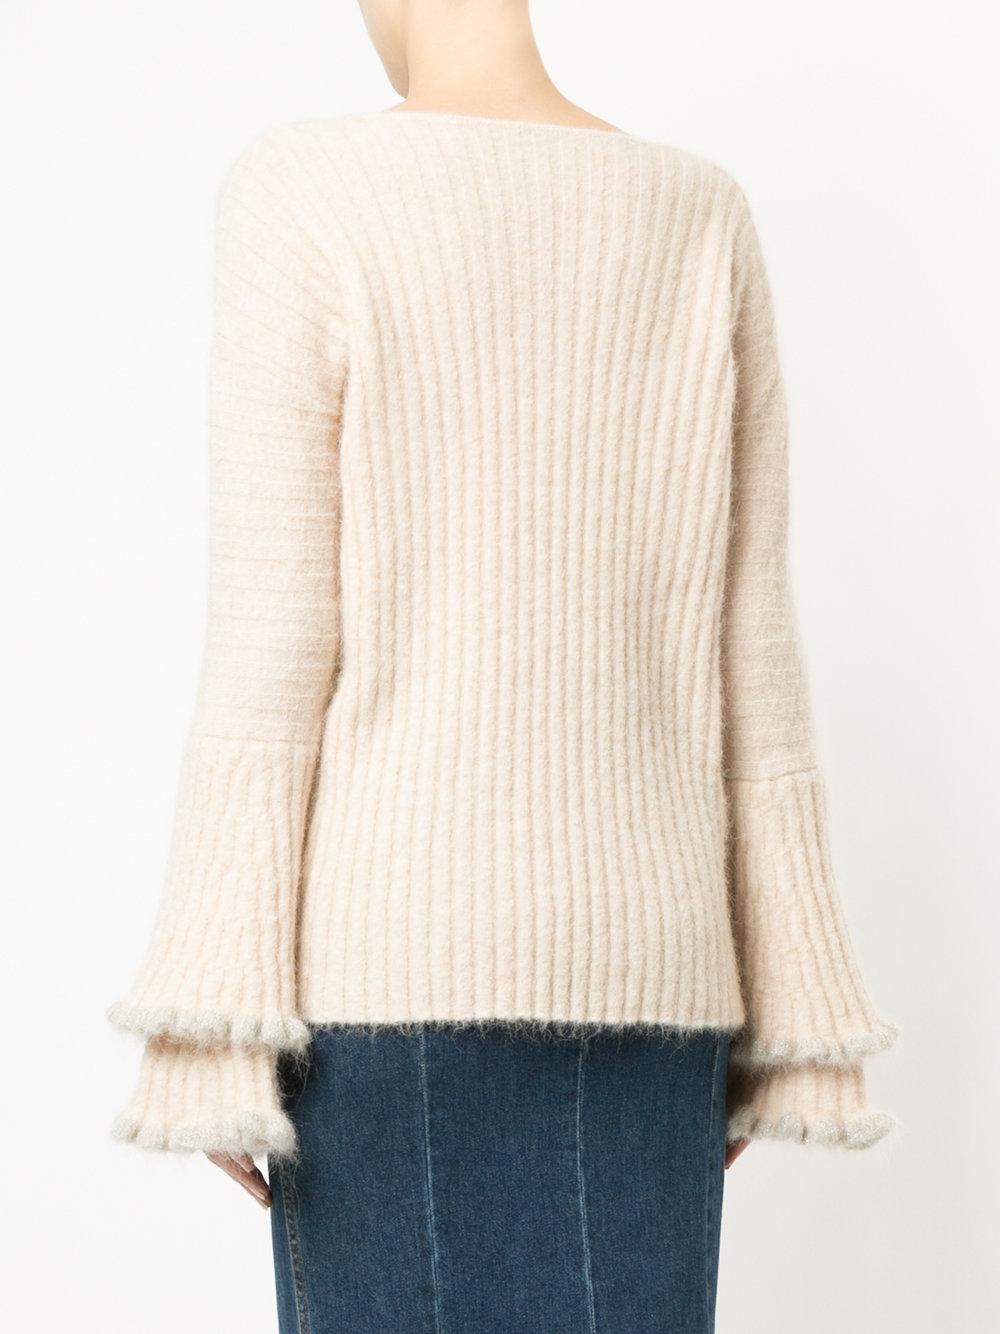 Only Lonely sweater - Nude & Neutrals Alice McCall Cheap Price Low Shipping Fee Exclusive Cheap Price Discount Browse Best Prices G7Yl1H2Ry